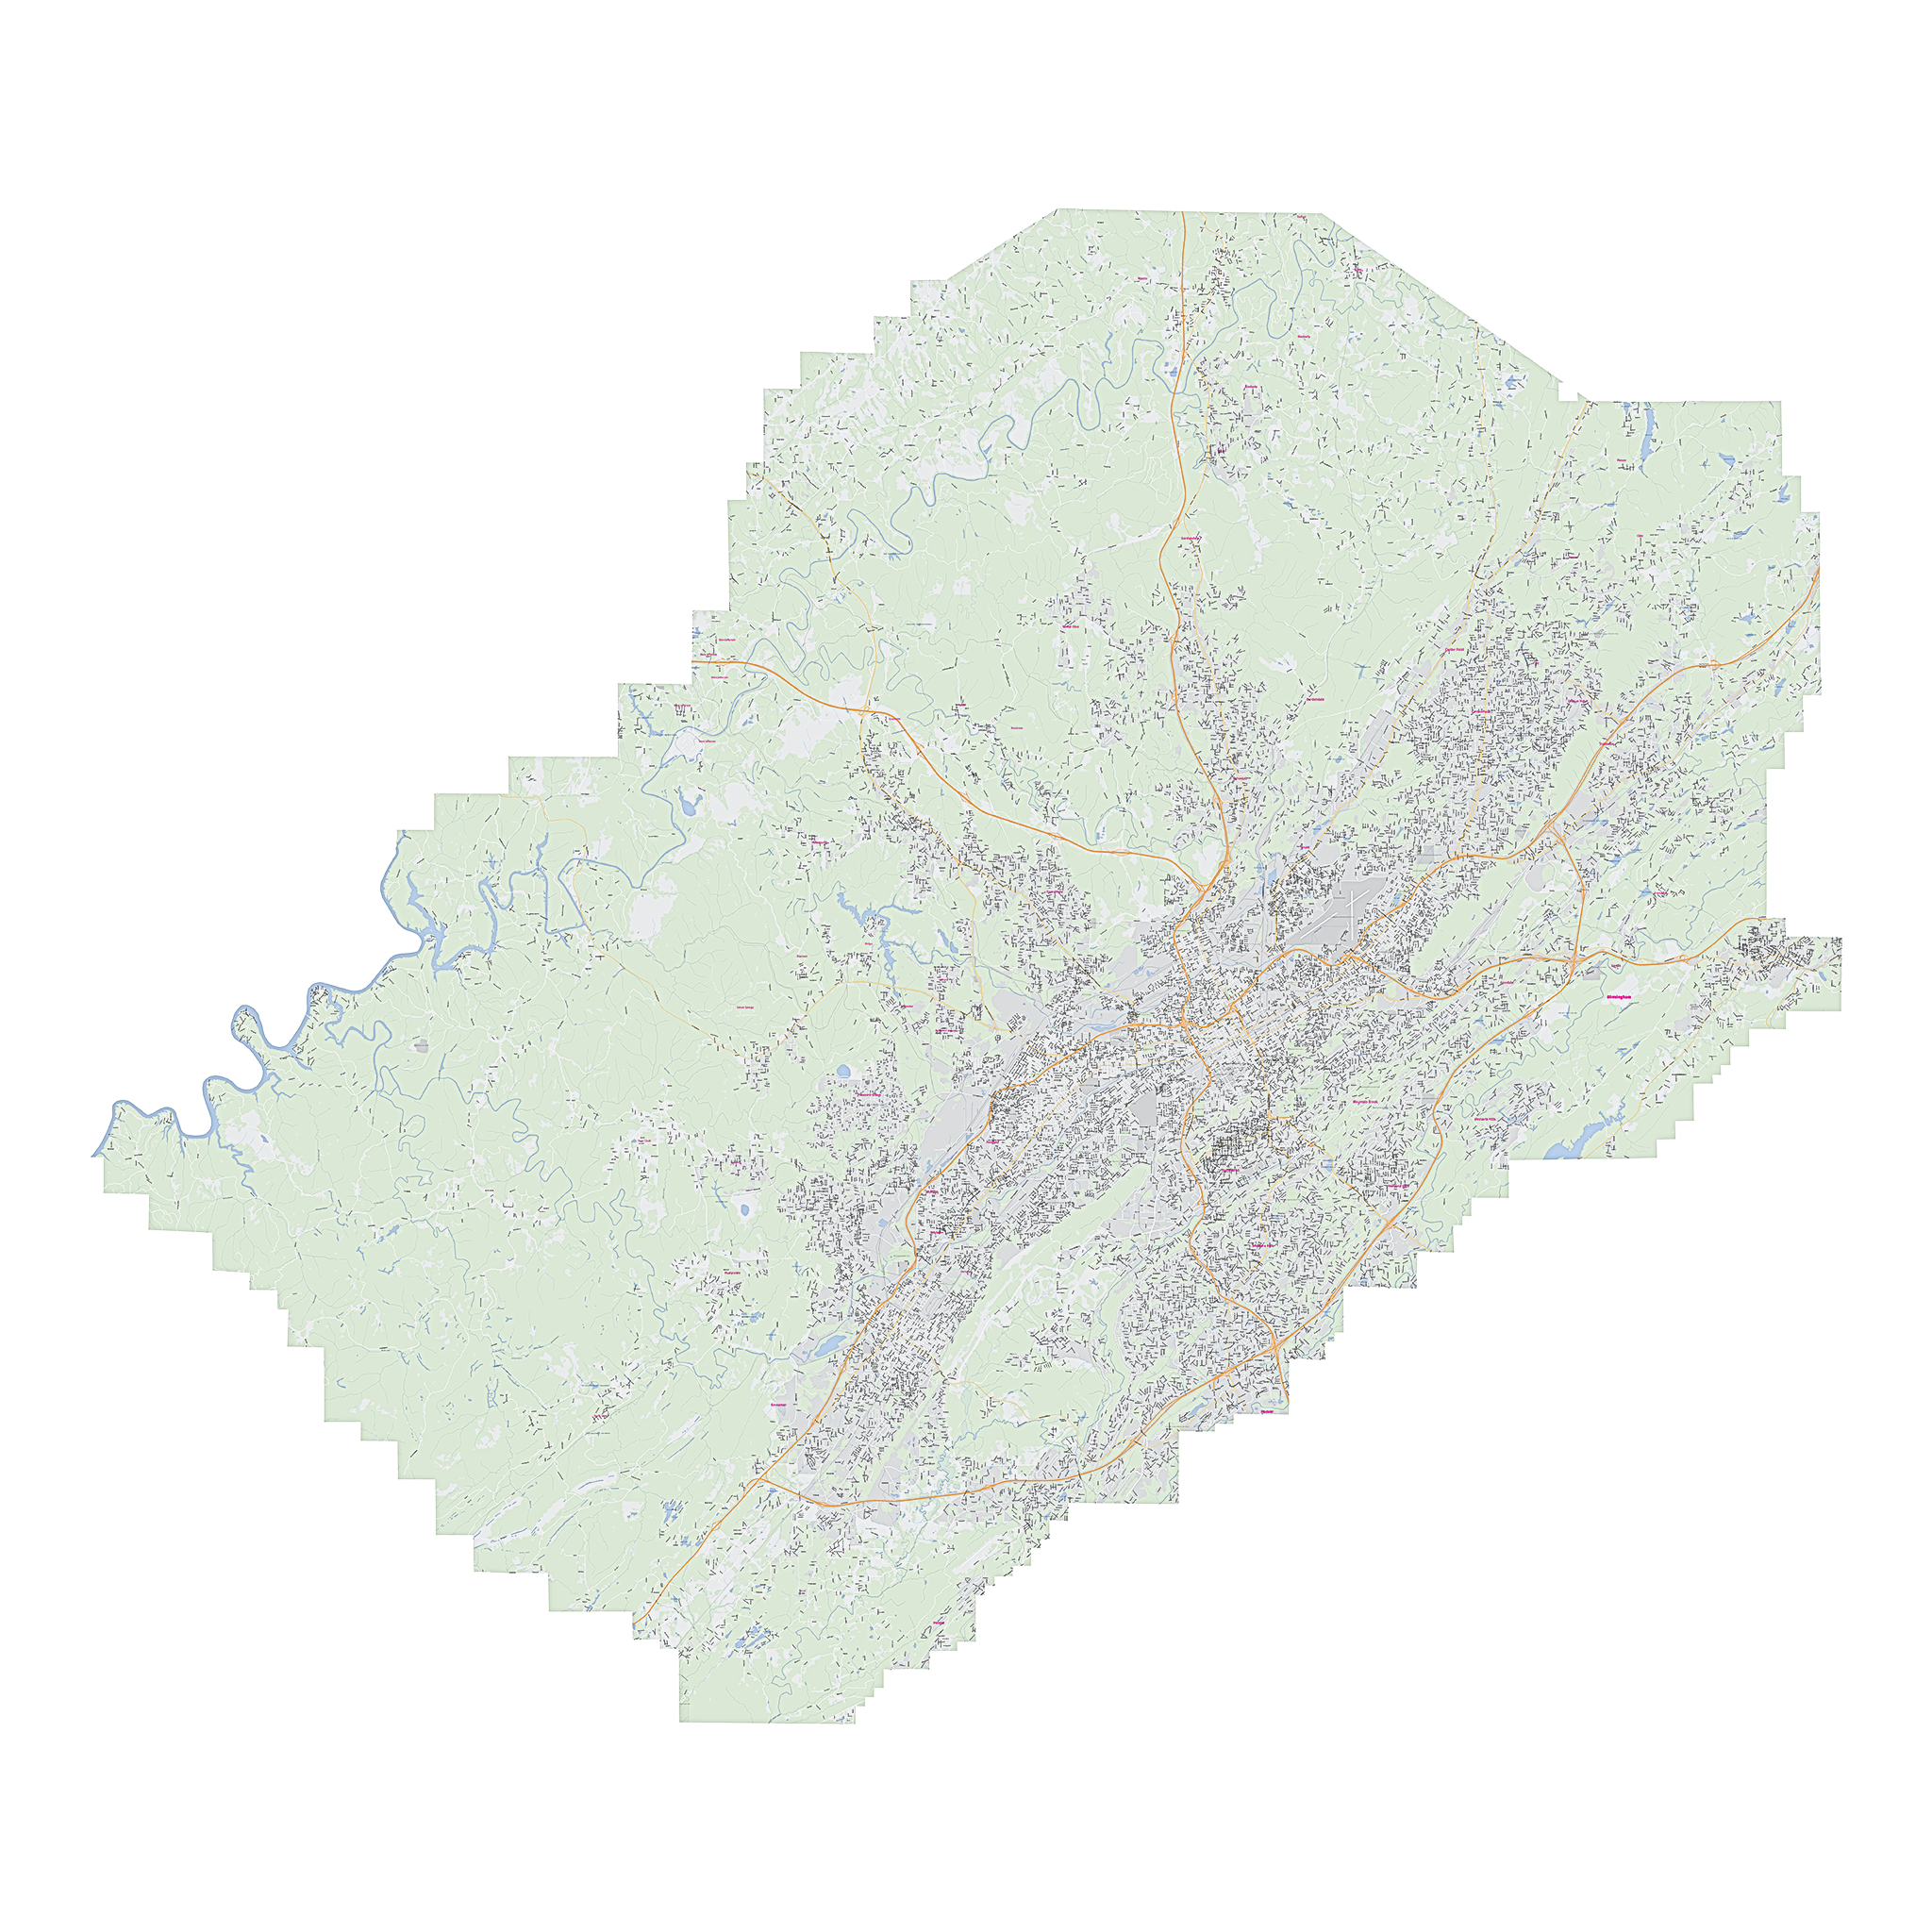 Royalty-free, digital vector street map of Jefferson County, Alabama.